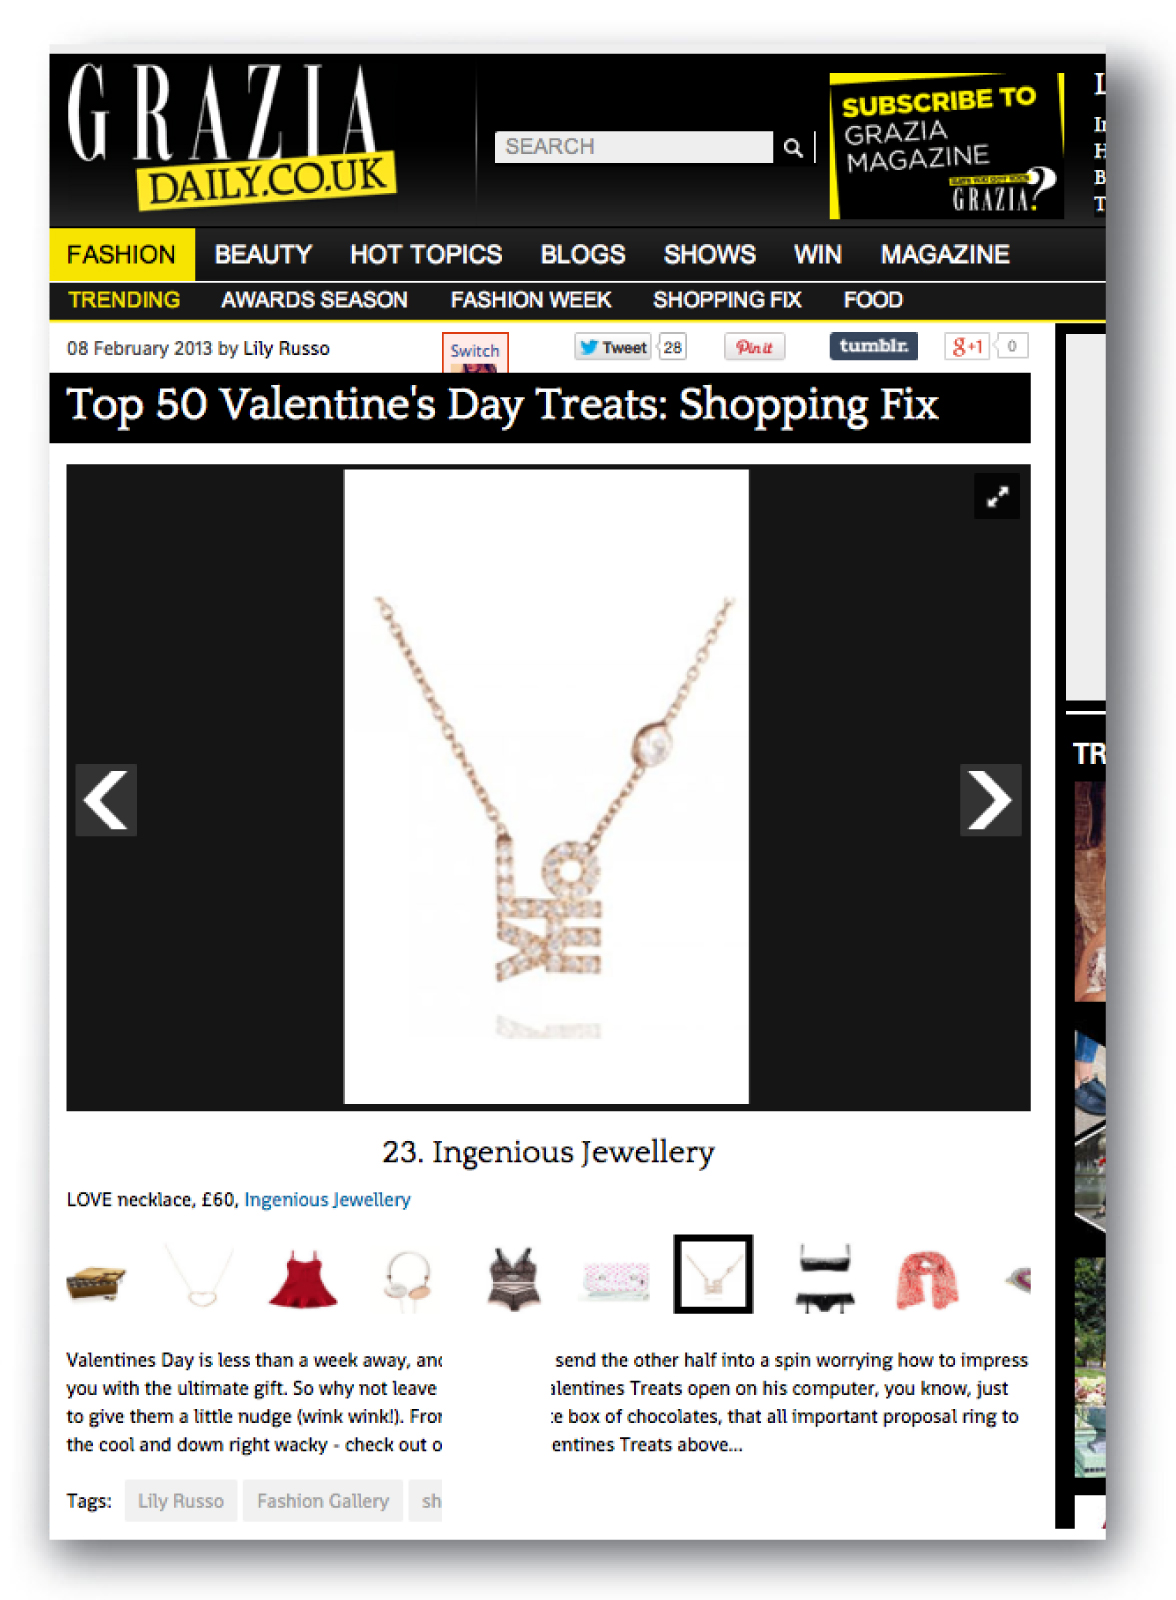 Grazia Daily 8th February 2013 Top 50 Valentine's Day Treats